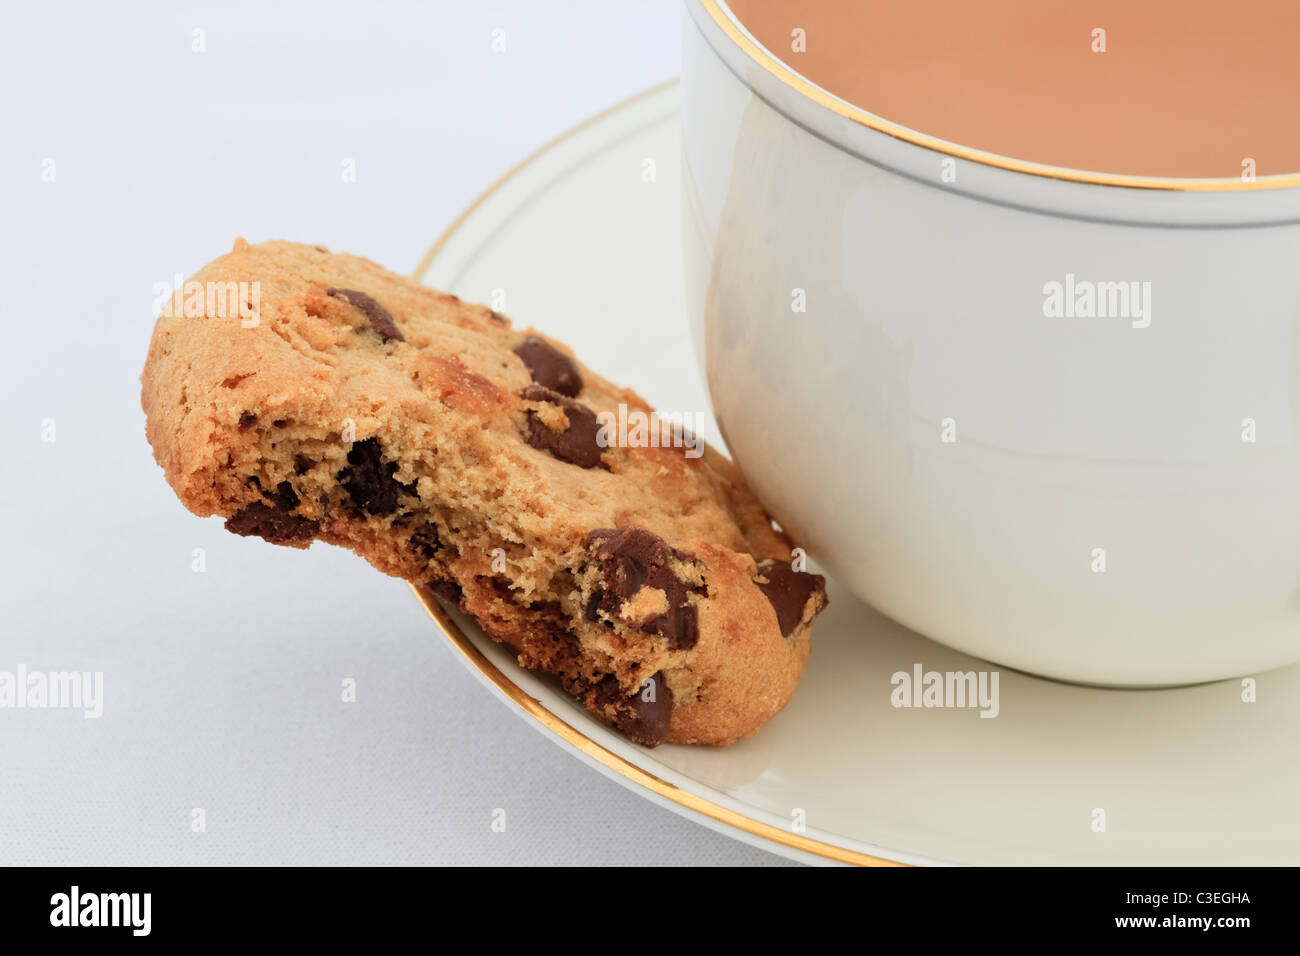 Cup of English tea and a chocolate chip biscuit with a bite taken out on the saucer. England UK Britain - Stock Image